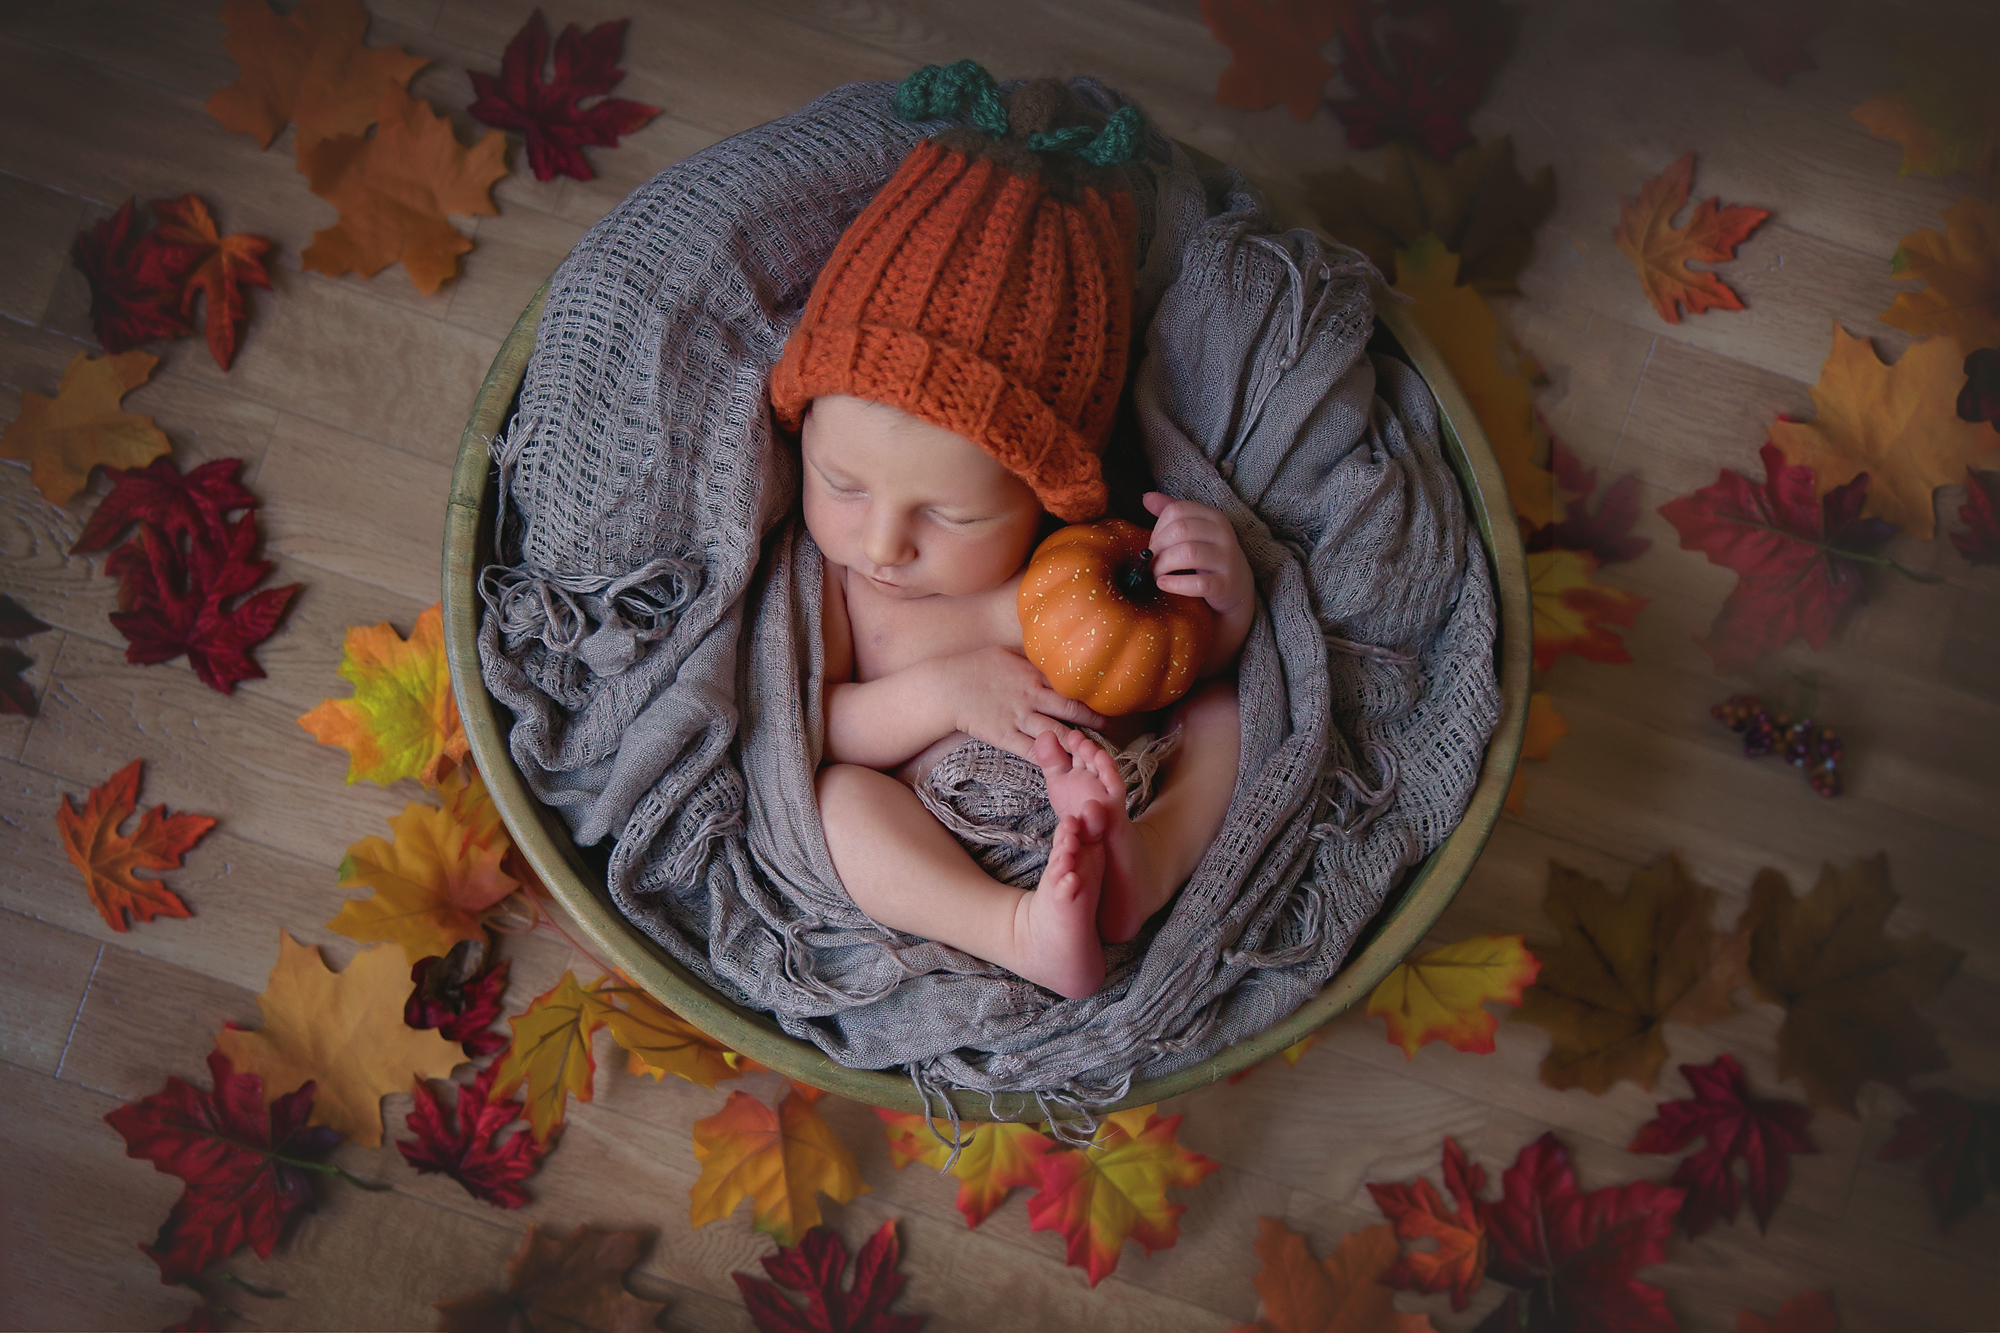 Thanksgiving inspired newborn baby photoshoot. Baby is dressed in a pumpkin hat, holding a little pumpkin, surrounded by leafs and is sleeping soundly in a wooden bowl. Newborn Photoshoot ideas. Calgary and Airdrie newborn baby photographer - Milashka Photography